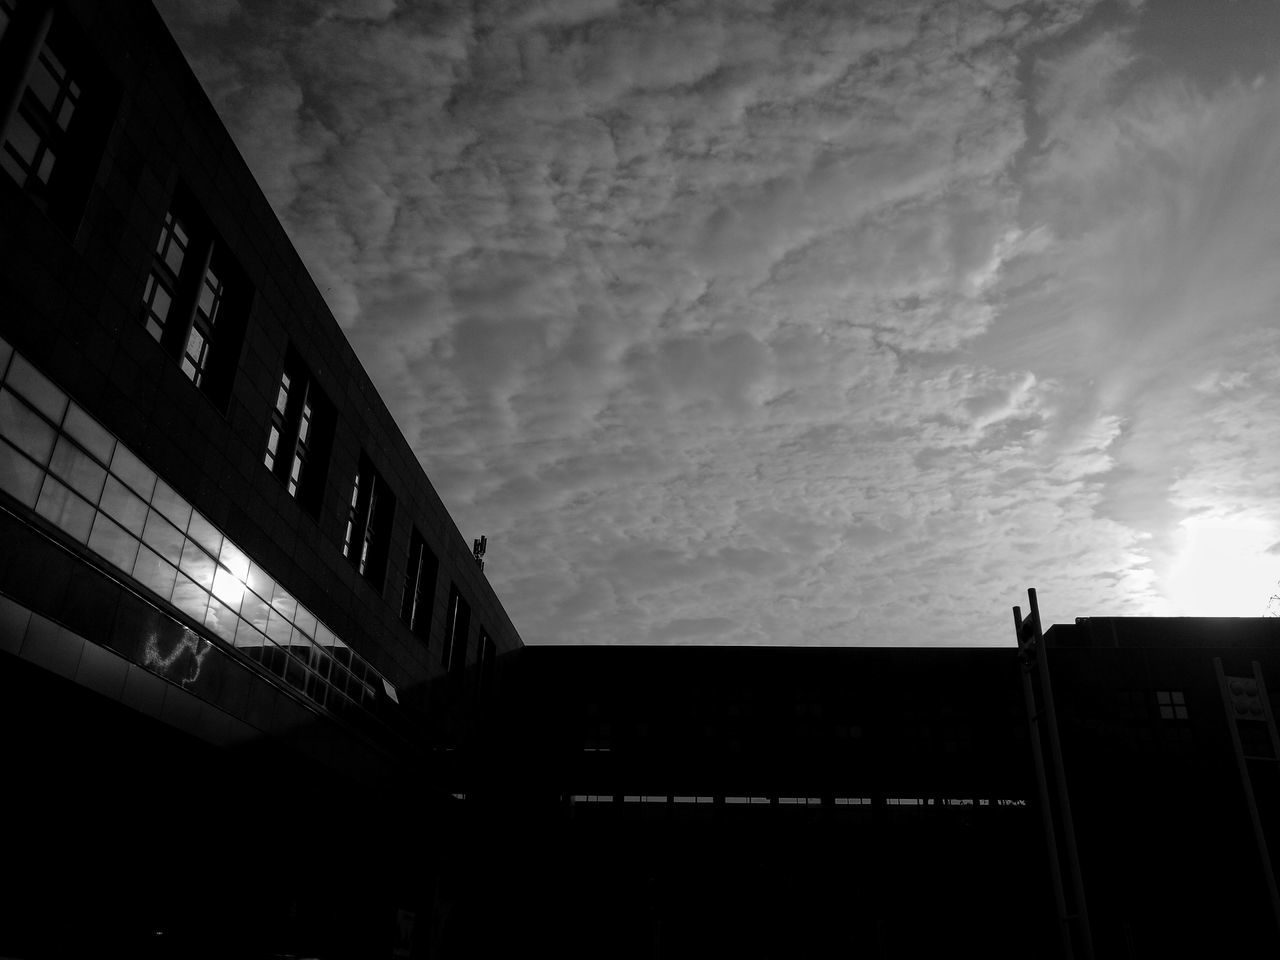 Blackandwhite Architecture Built Structure Low Angle View Outdoors Sky Fuji Fujifilm_xseries Fujixe2 Fujilove Fujilovers Fujifilm_series FujiXF35 Built Structure Built Structure building exterior Cloud - Sky Outdoors No People Architecture Sky Low Angle View Building Exterior Cloud - Sky Outdoors No People First Eyeem Photo